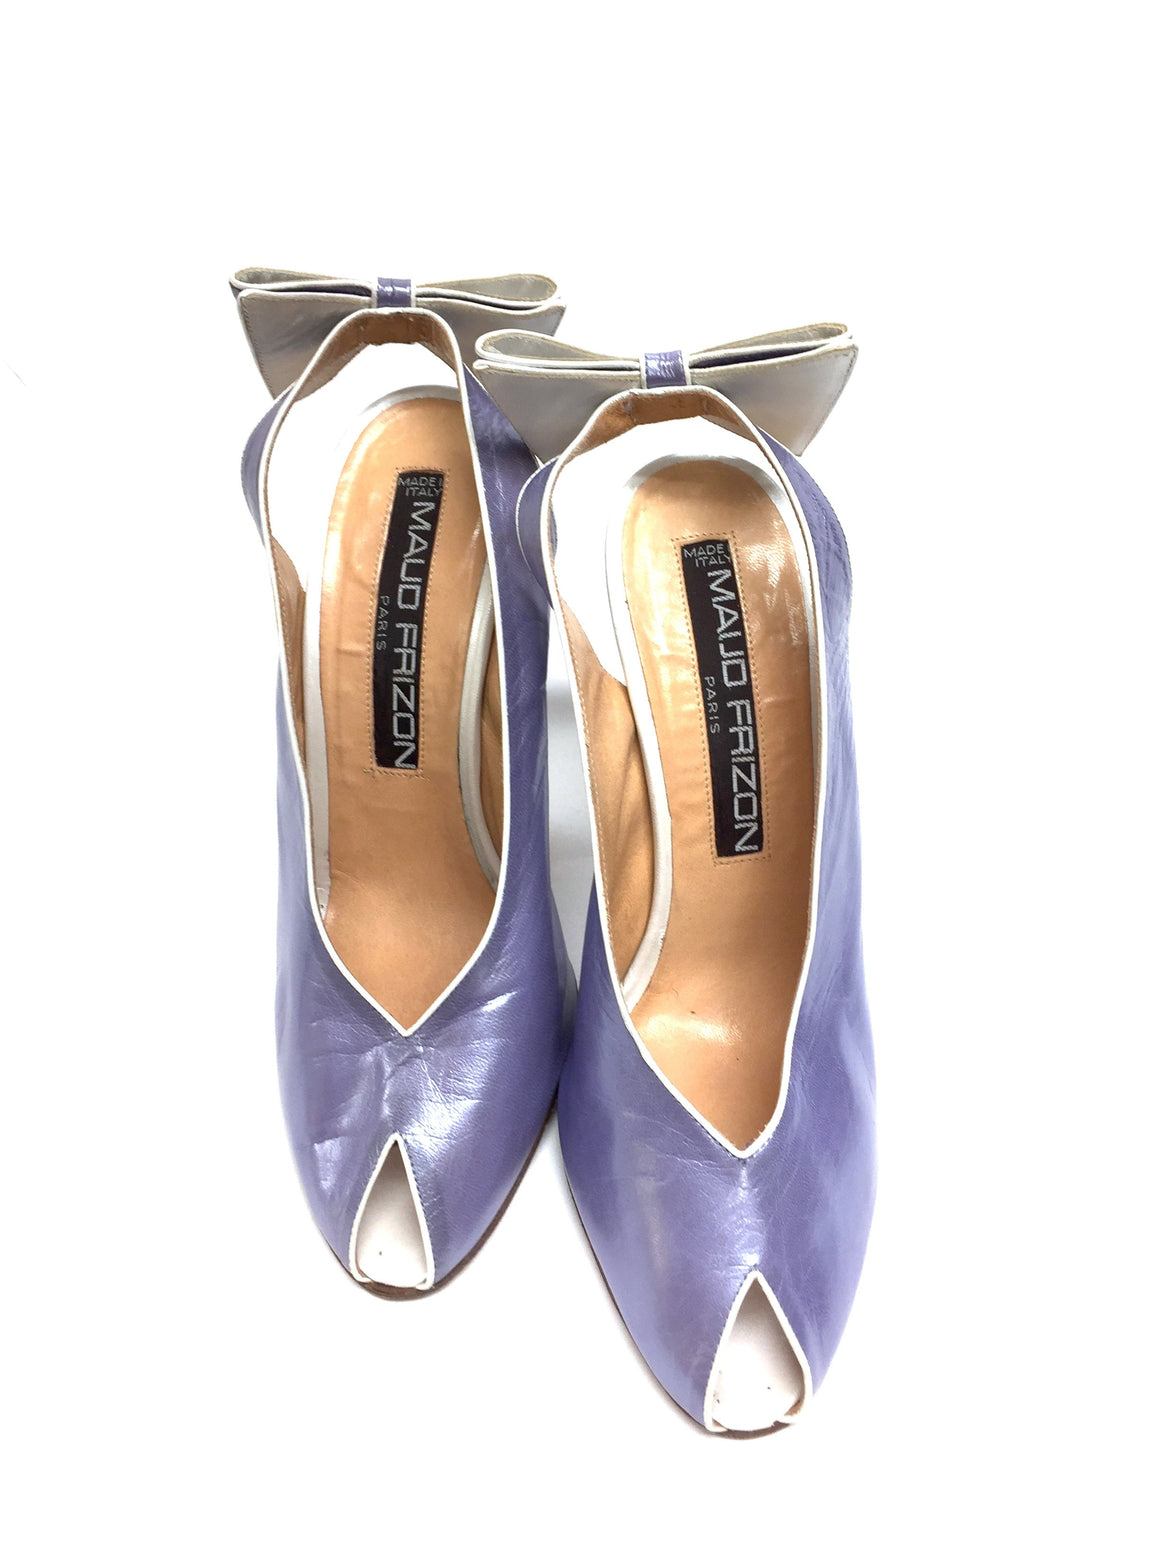 bisbiz.com MAUD FRIZON  Pearlized Lavender Peep-Toe Bow Slingback Pumps Size: 37.5 / 7.5 - Bis Luxury Resale